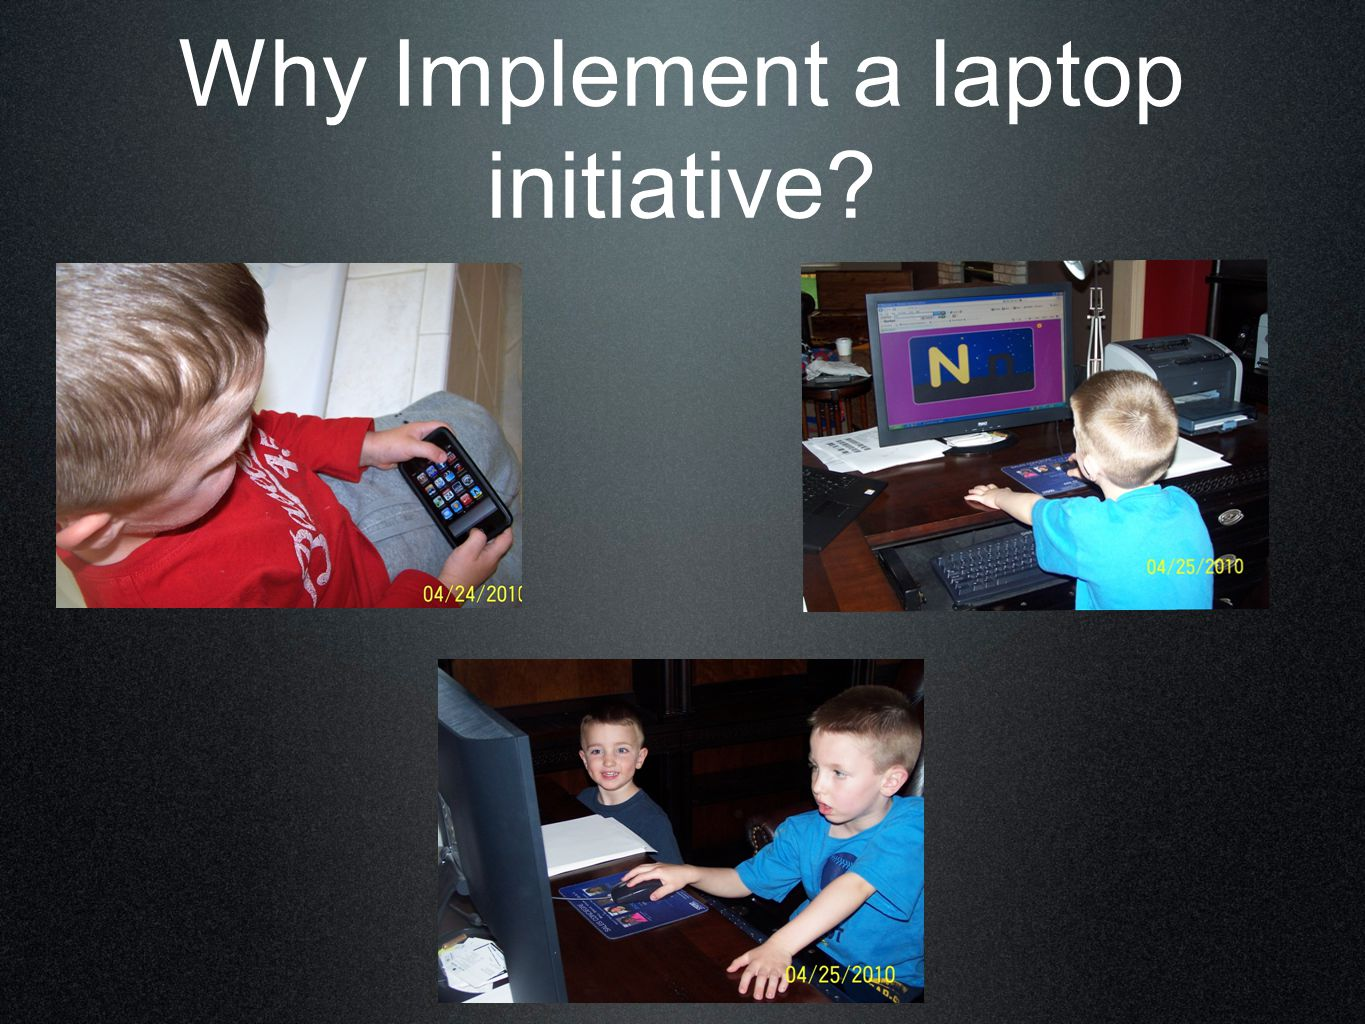 Why Implement a laptop initiative?